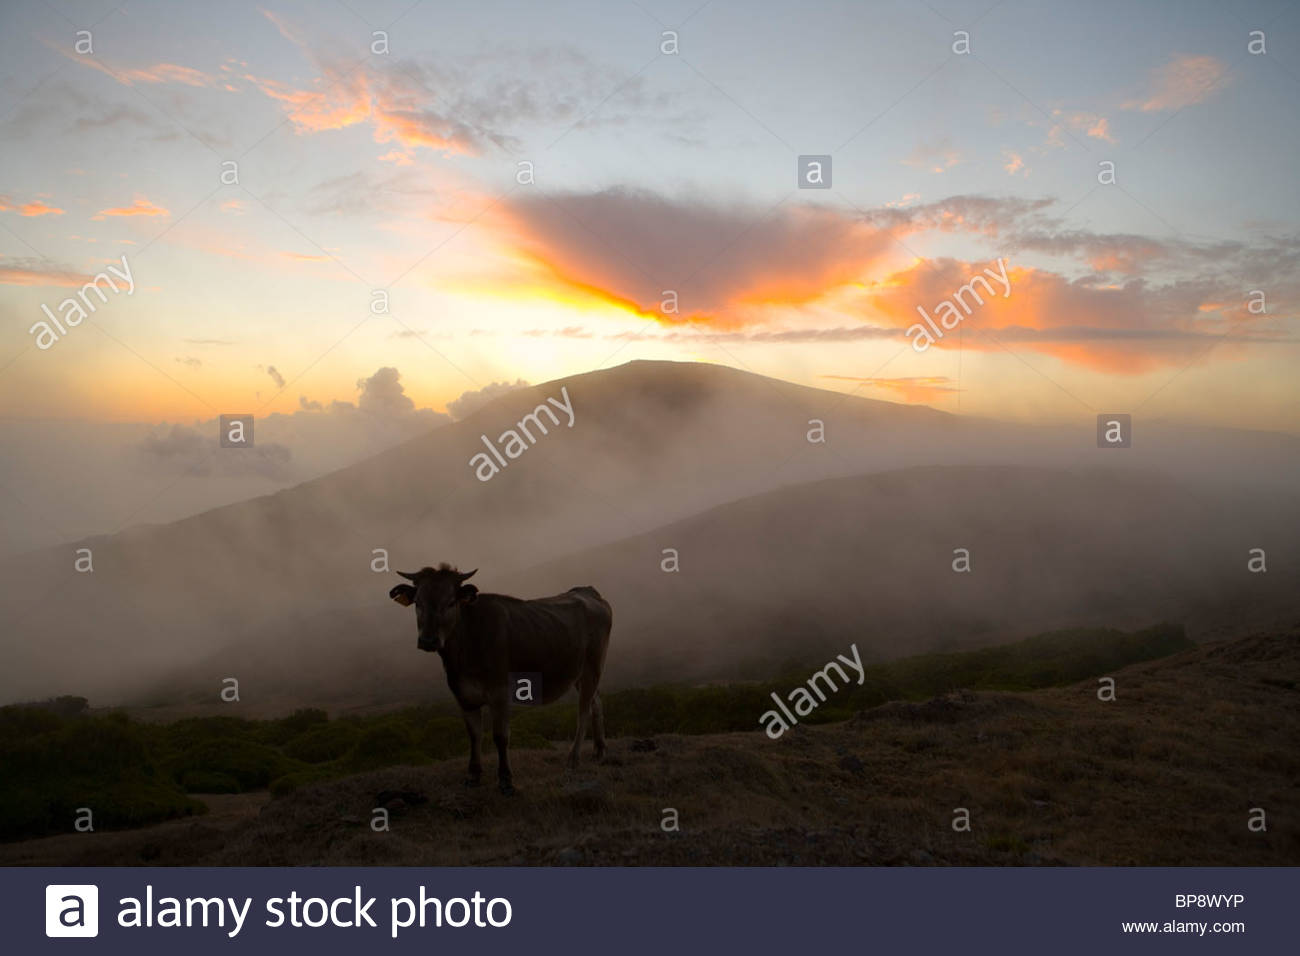 Where's The Beef ?, Cow surrounded by mist at sunset, near Rabacal, Paul da Serra Plateau, Madeira, Portugal - Stock Image